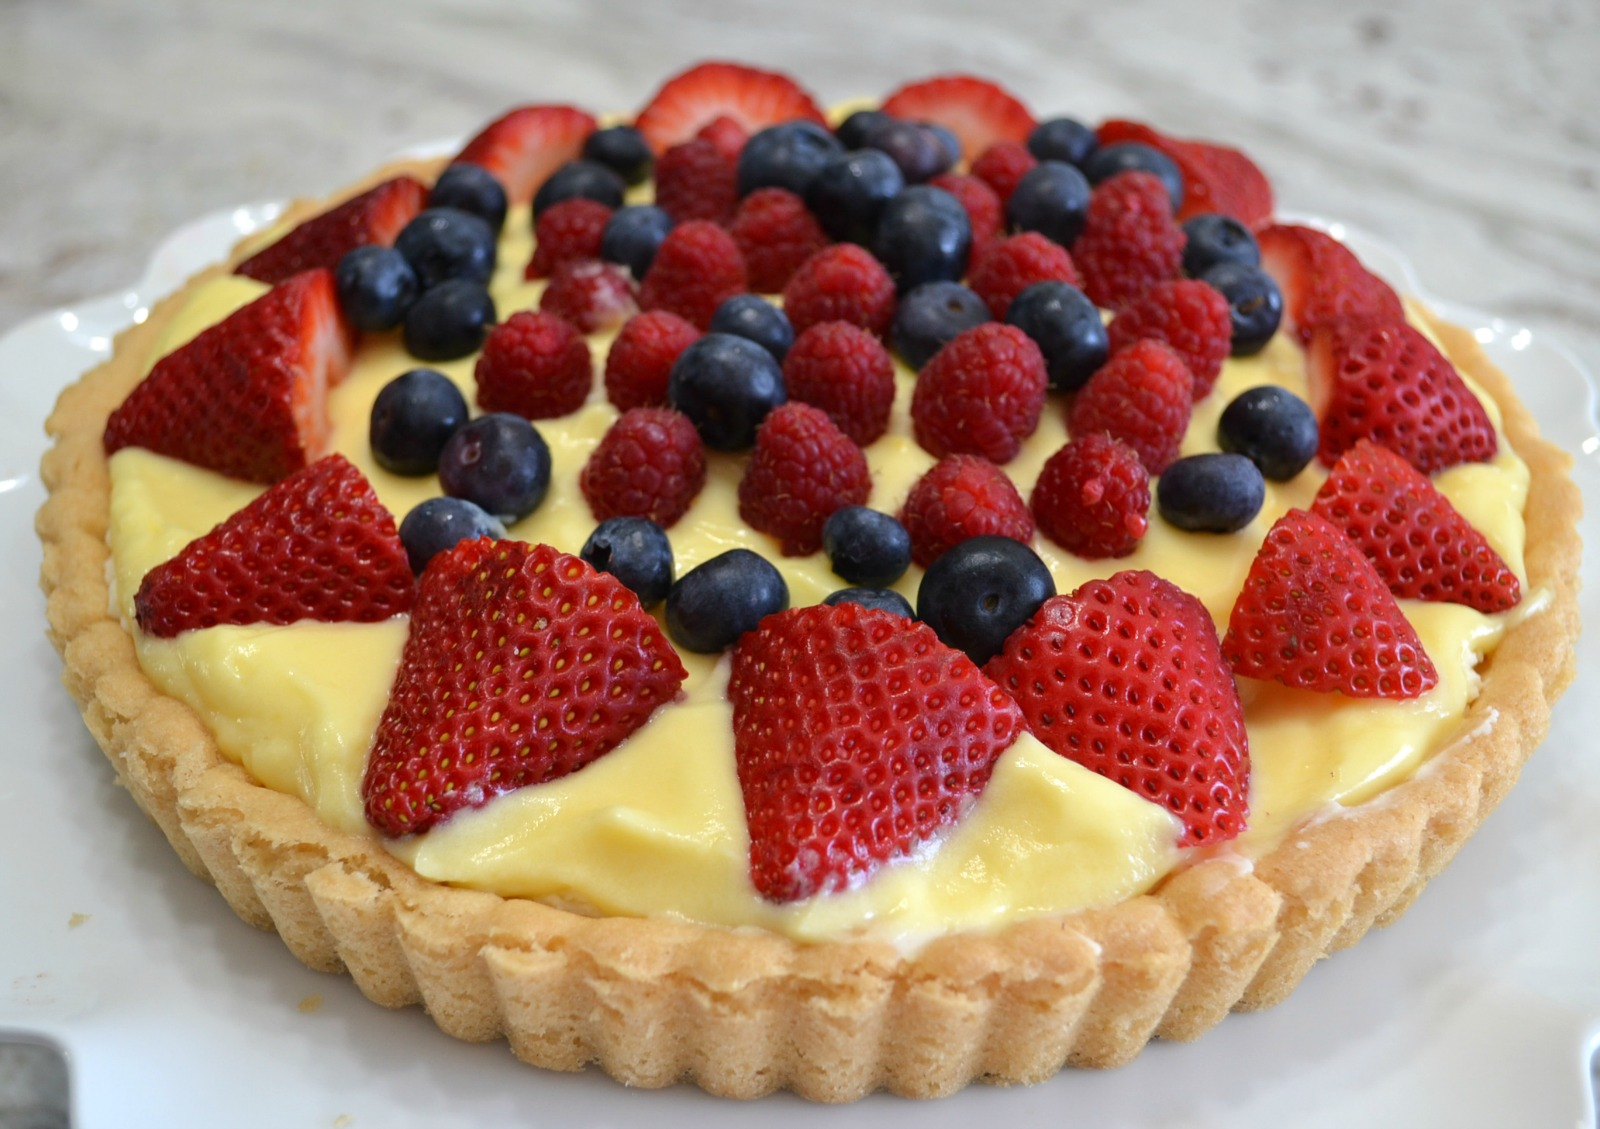 Dessert tars and tarlets, easy but elegant summertime desserts.